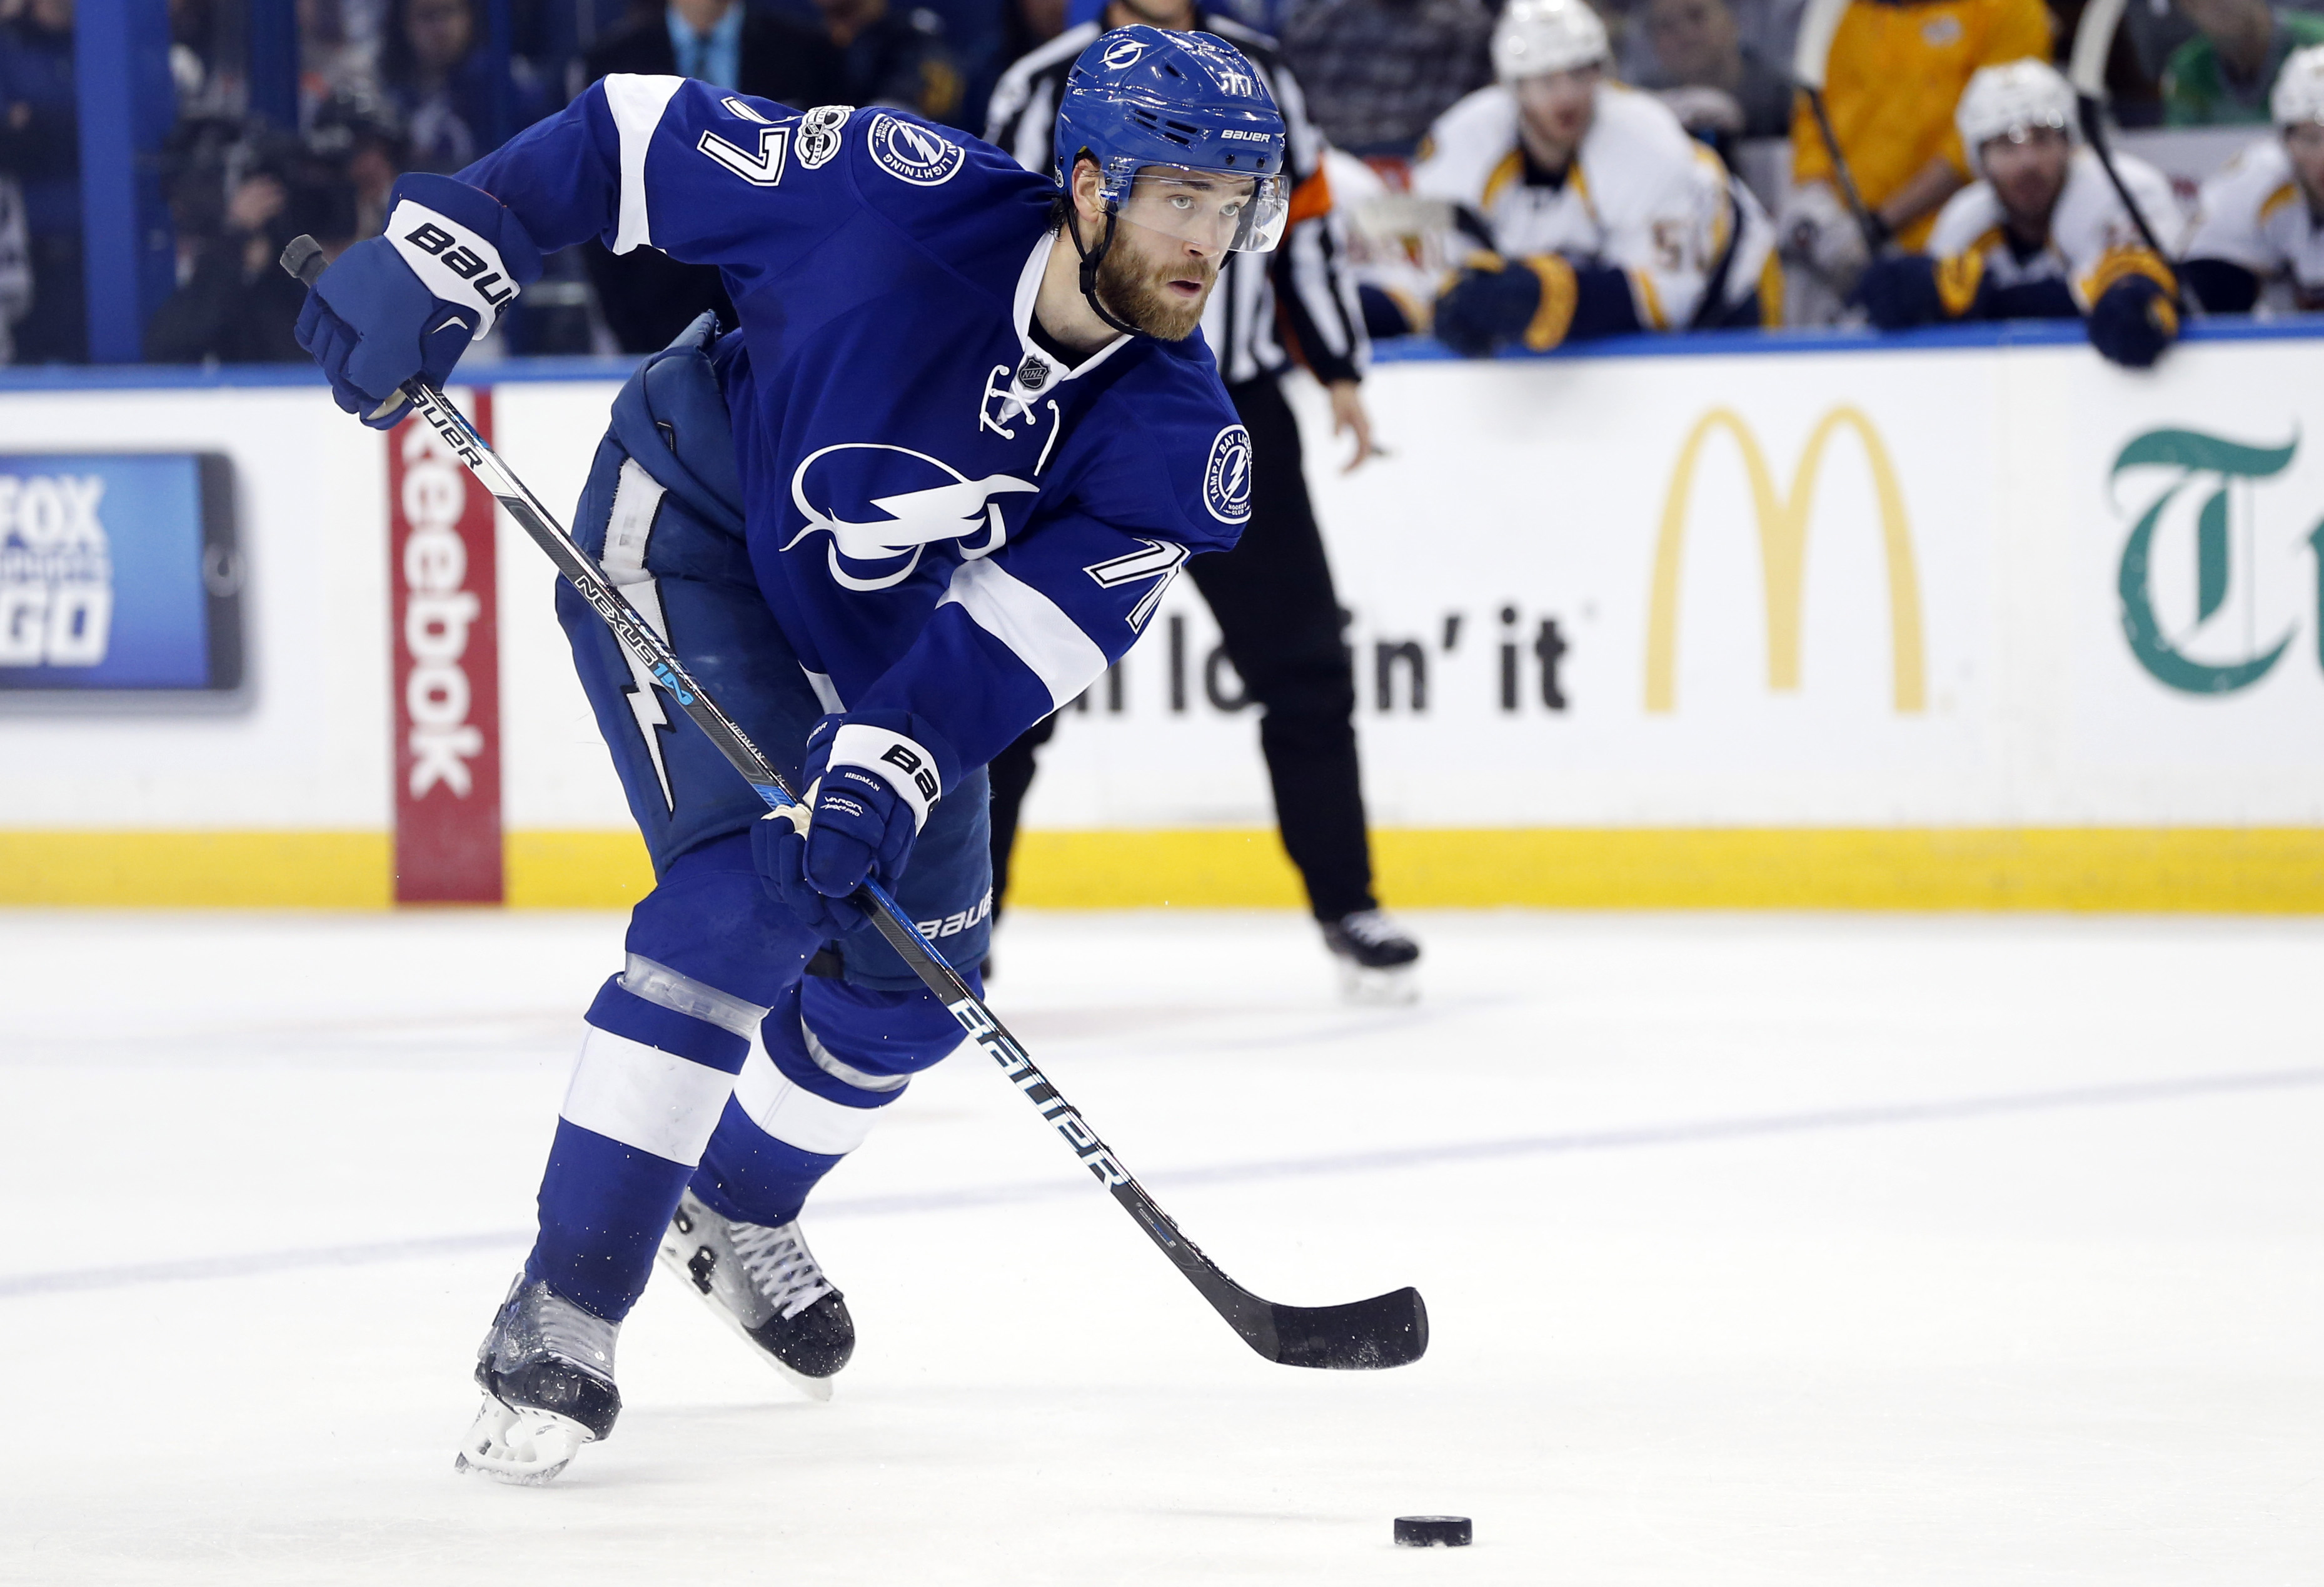 Jan 5, 2017; Tampa, FL, USA;Tampa Bay Lightning defenseman Victor Hedman (77) skates with the puck against the Nashville Predators during the third period at Amalie Arena. Nashville Predators defeated the 6-1. Mandatory Credit: Kim Klement-USA TODAY Sports